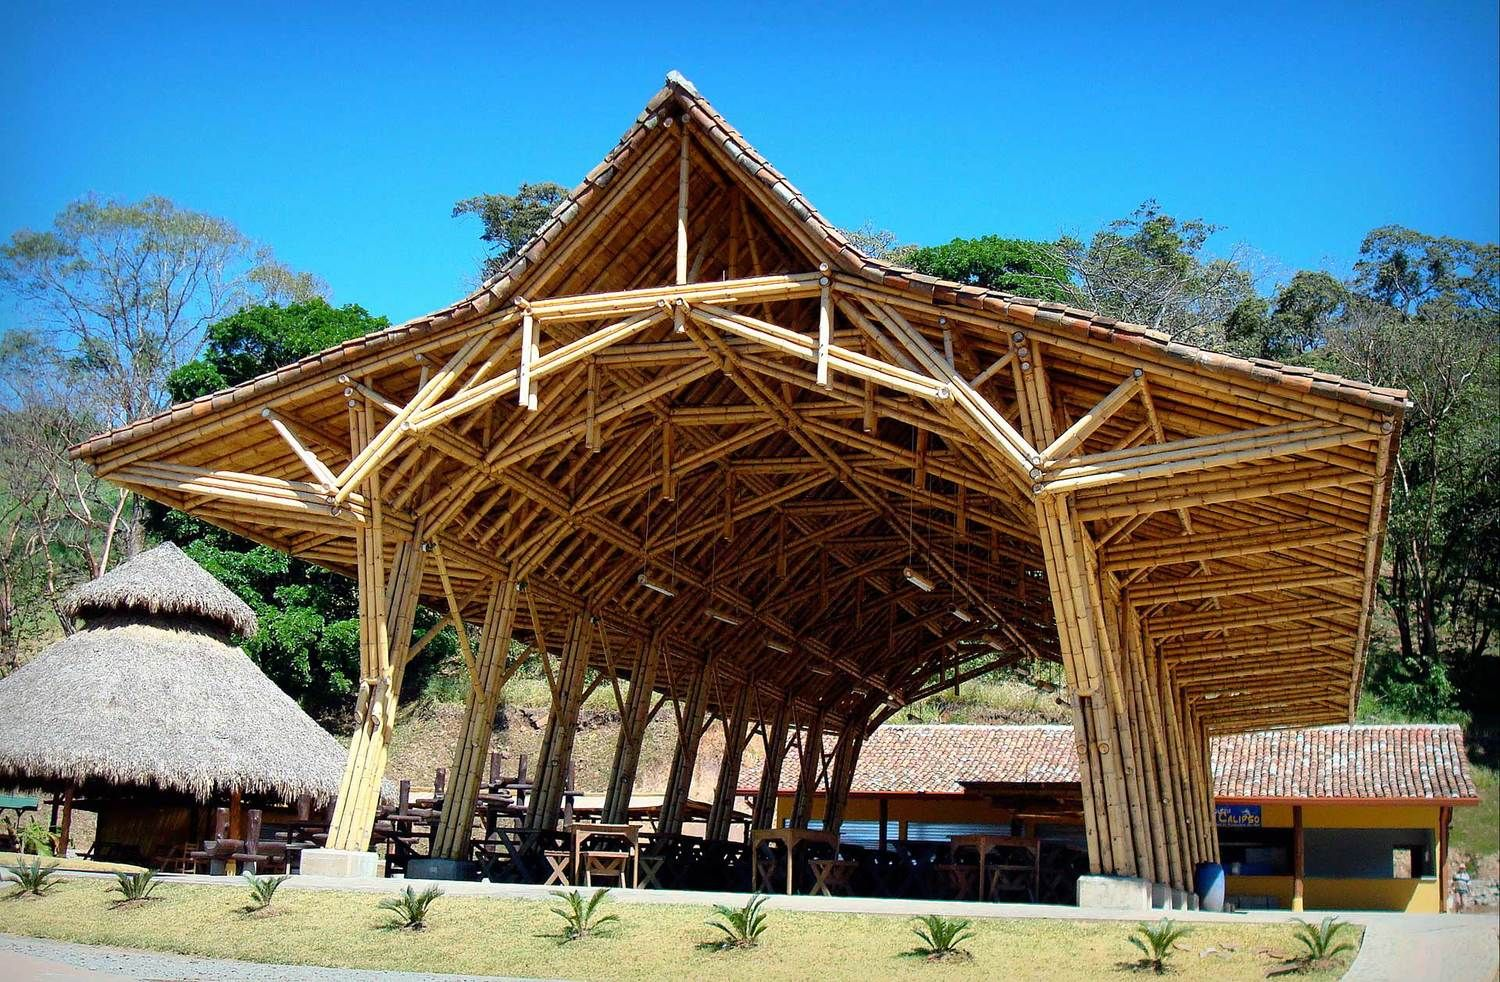 PANACA Agricultural Theme Park Bamboo structure, Bamboo